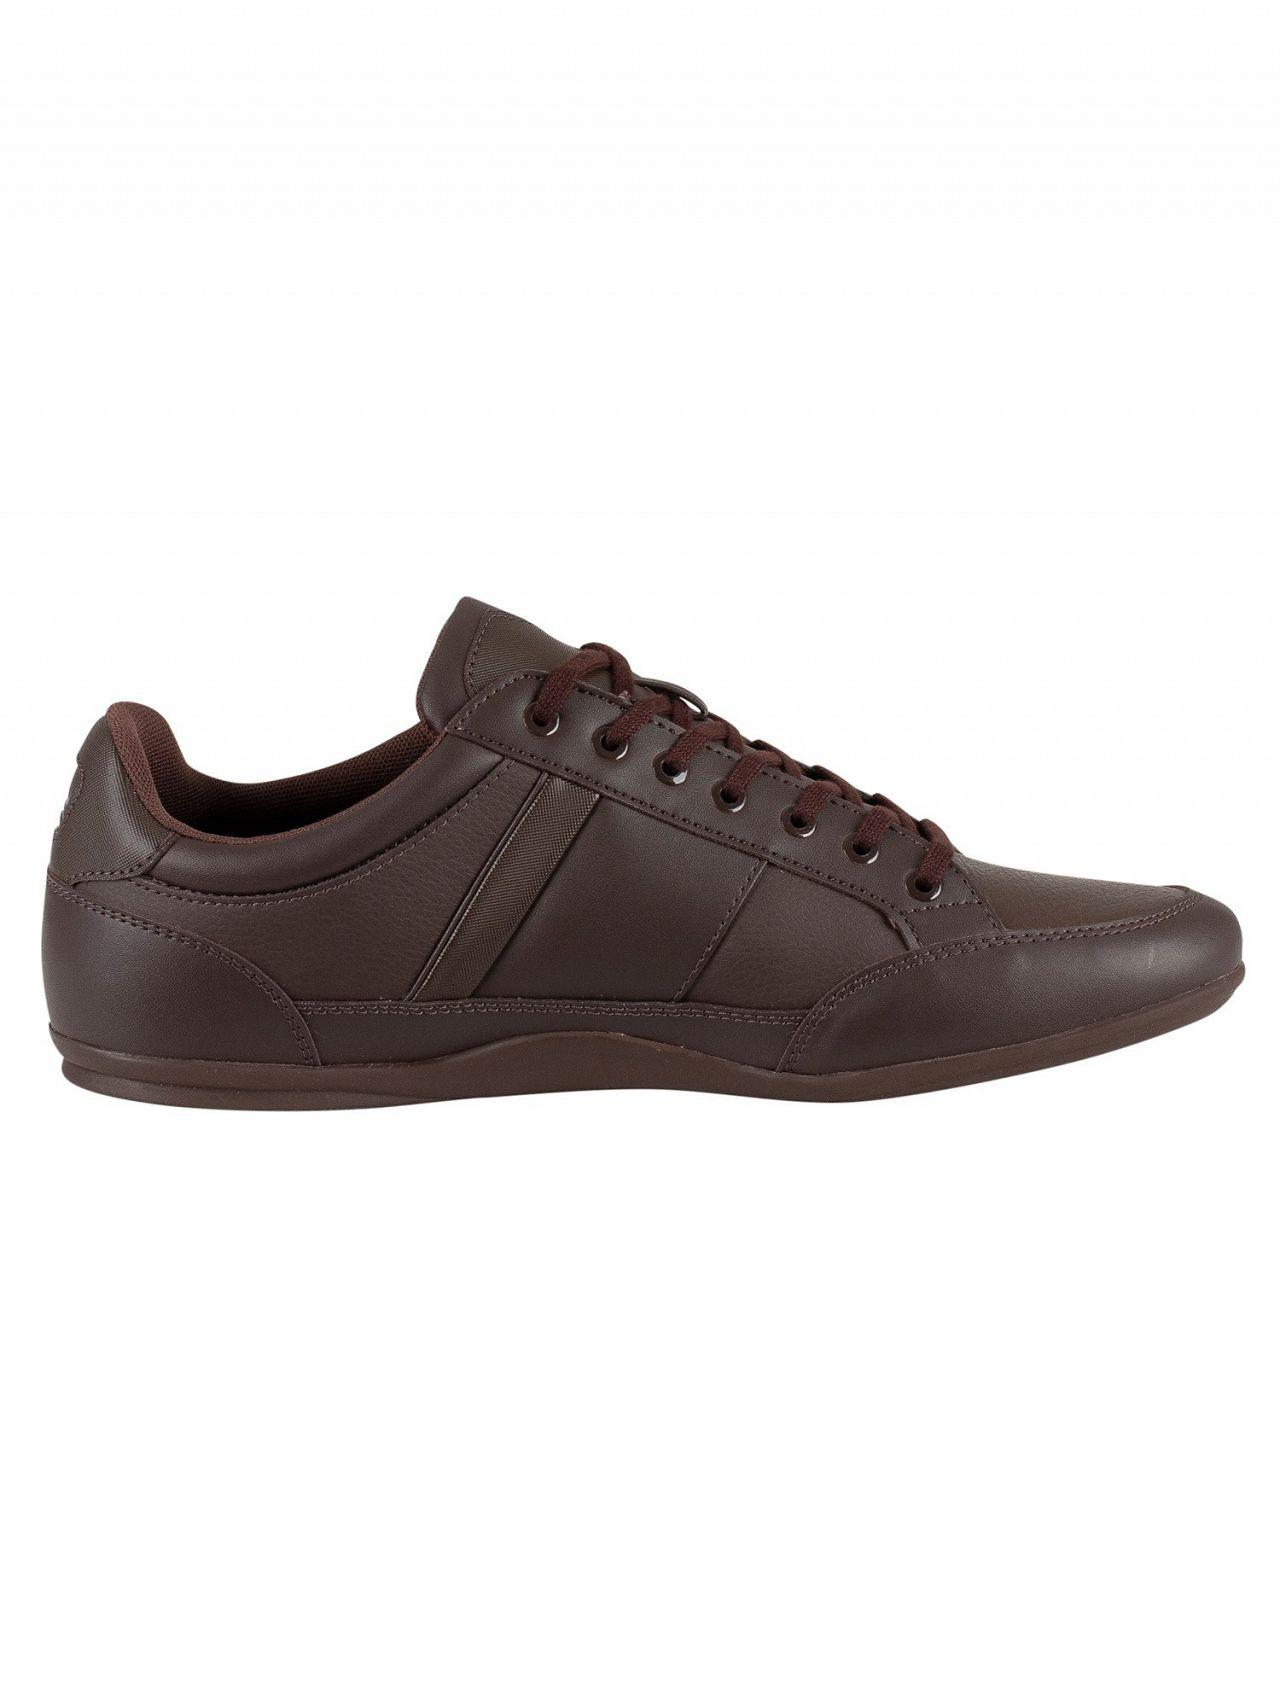 324ff1f01496 Lacoste - Dark Brown Chaymon Bl 1 Cma Leather Trainers for Men - Lyst. View  fullscreen